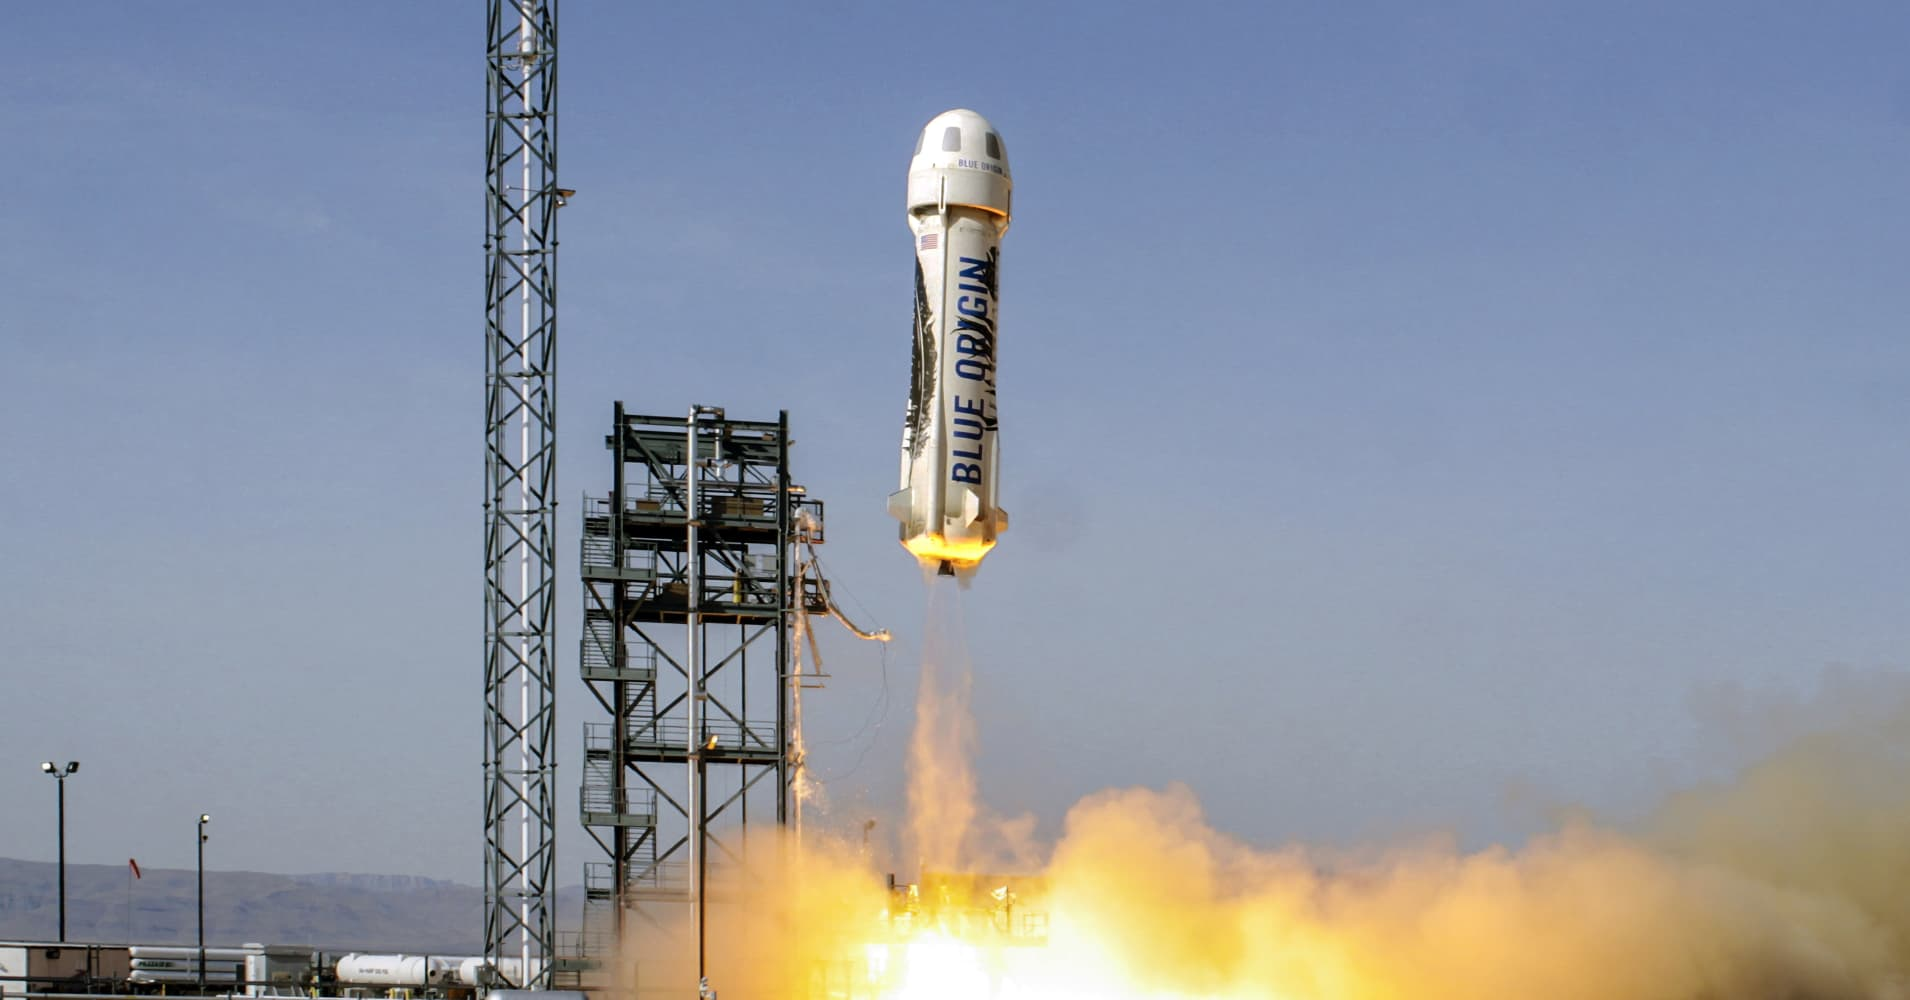 Blue Origin just launched and landed the rocket Jeff Bezos wants use for  space tourism